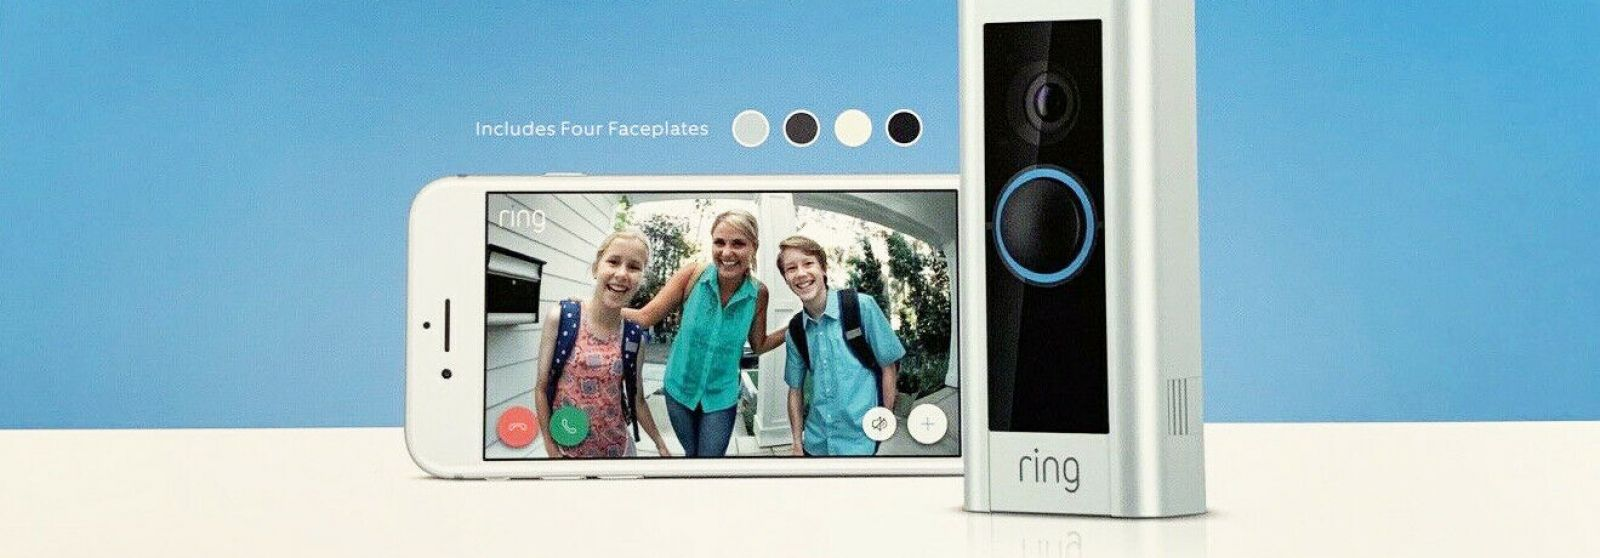 Ring Doorbell Giveaway Winner